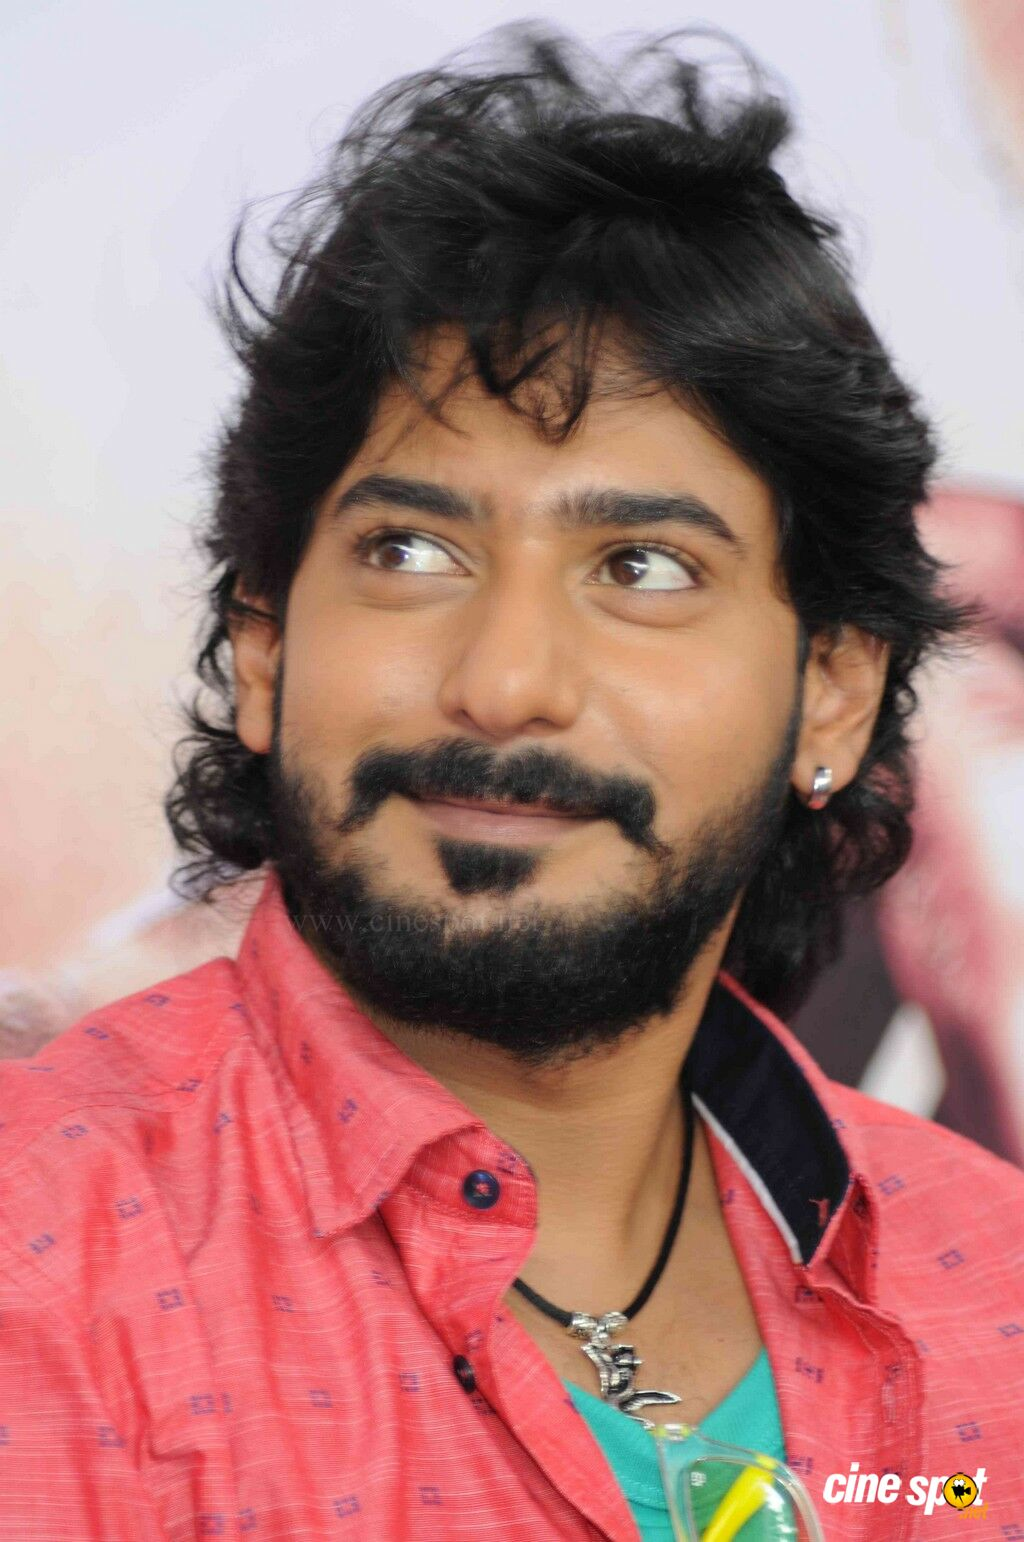 prajwal devaraj height in feetprajwal devaraj movies, prajwal devaraj wife, prajwal devaraj photos, prajwal devaraj wife photos, prajwal devaraj facebook, prajwal devaraj films, prajwal devaraj all movies, prajwal devaraj new movie 2016, prajwal devaraj hits, prajwal devaraj brother, prajwal devaraj kannada movies, prajwal devaraj family, prajwal devaraj hit songs, prajwal devaraj date of birth, prajwal devaraj wife name, prajwal devaraj height in feet, prajwal devaraj wife pics, prajwal devaraj new film, prajwal devaraj latest movies, prajwal devaraj video songs